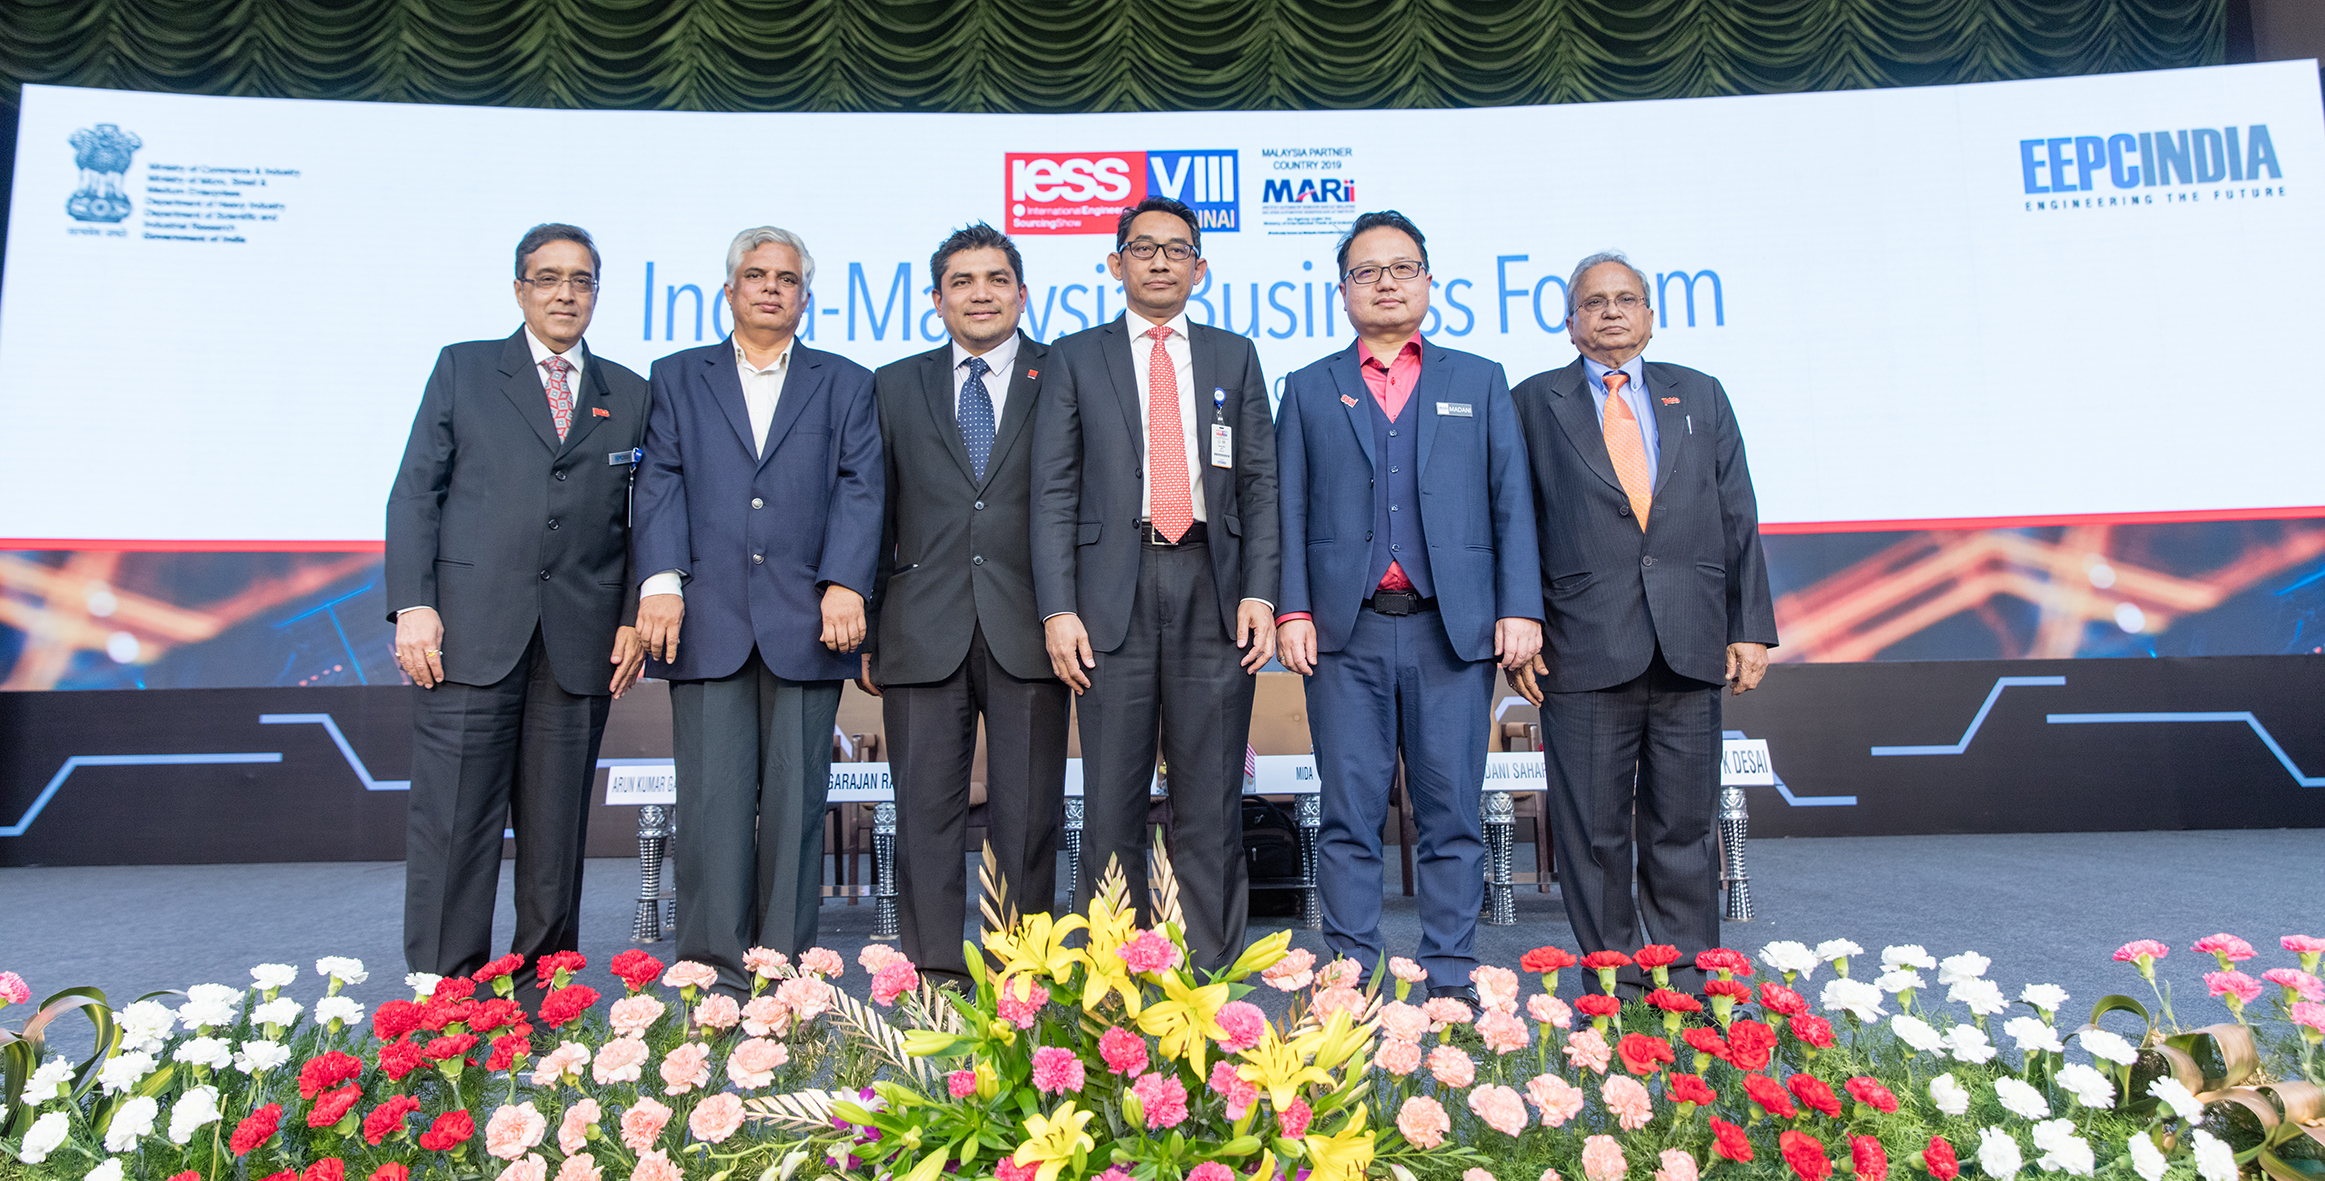 India Malaysia Business Forum. Mr. Mahesh K. Desai, Sr. Vice Chairman and Mr. Arun Kr. Garodia, Vice Chairman along with other dignitaries from MIDA, MATRADE, NASSCOM, IoT, MARII and EXIM Bank, Malaysia were present at this Ceremony